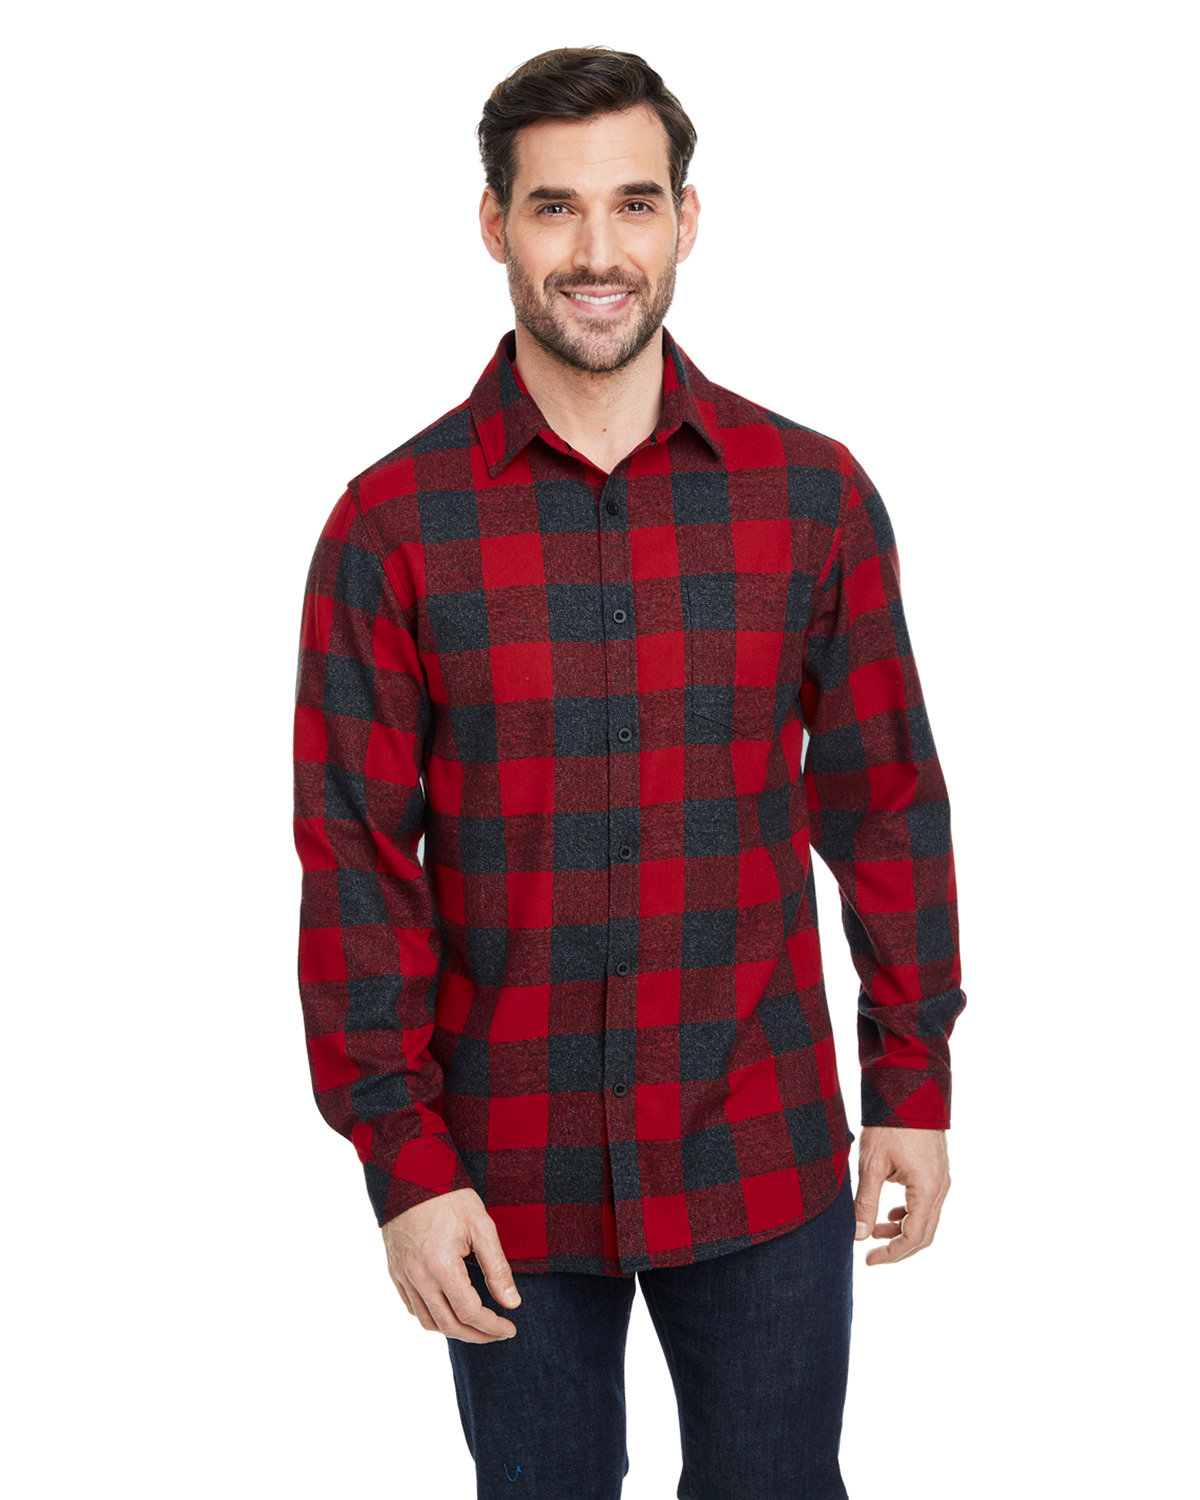 Burnside Woven Plaid Flannel With Biased Pocket RED/ H BLACK